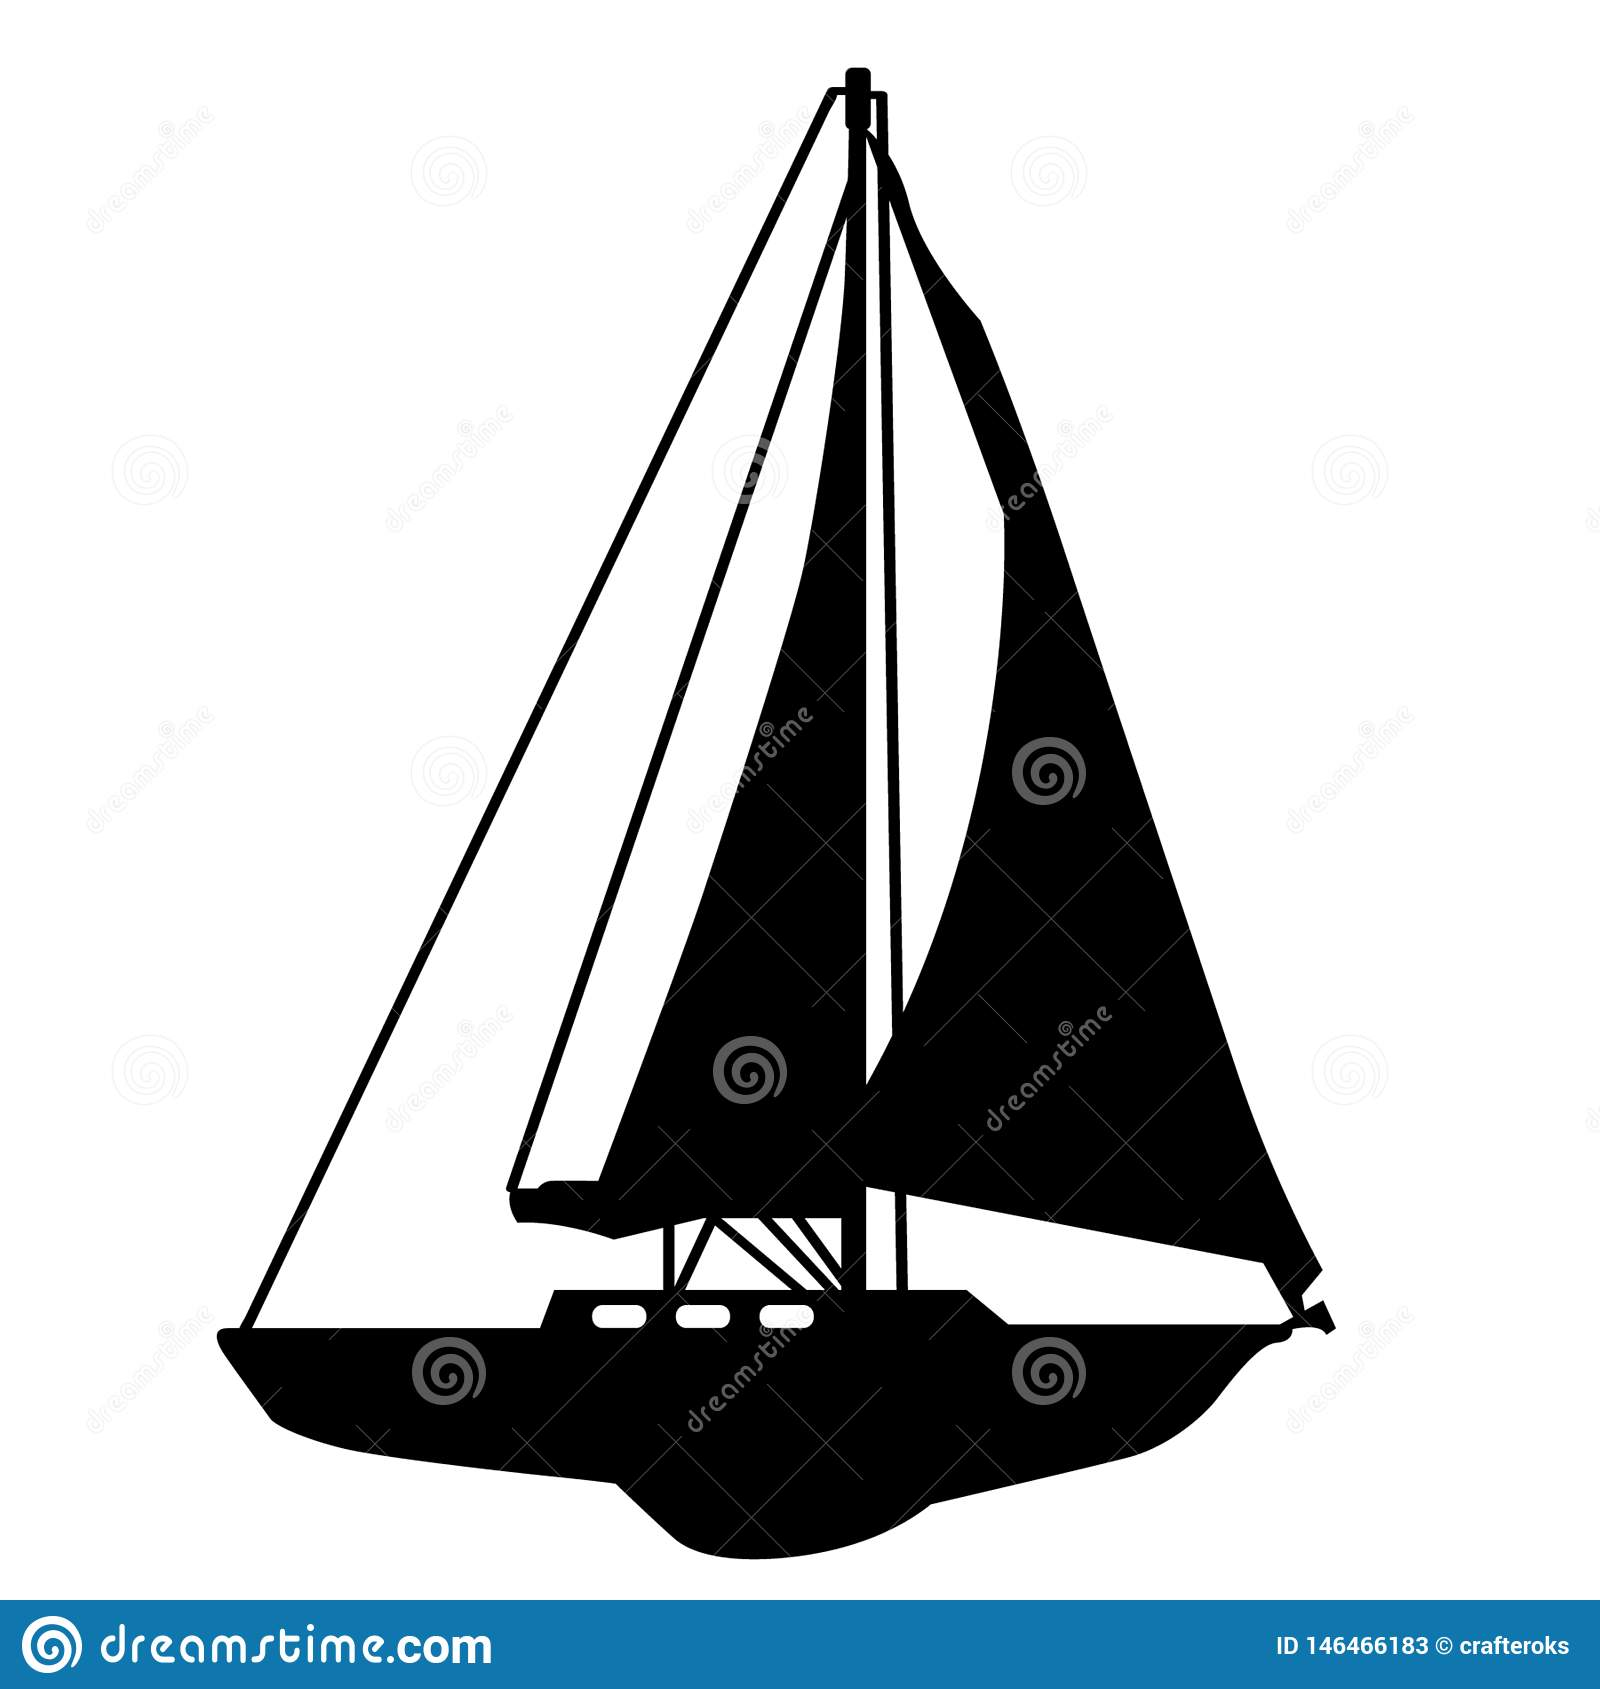 Sailboat Hand drawn, Vector, Eps, Logo, Icon, silhouette Illustration by crafteroks for different uses.